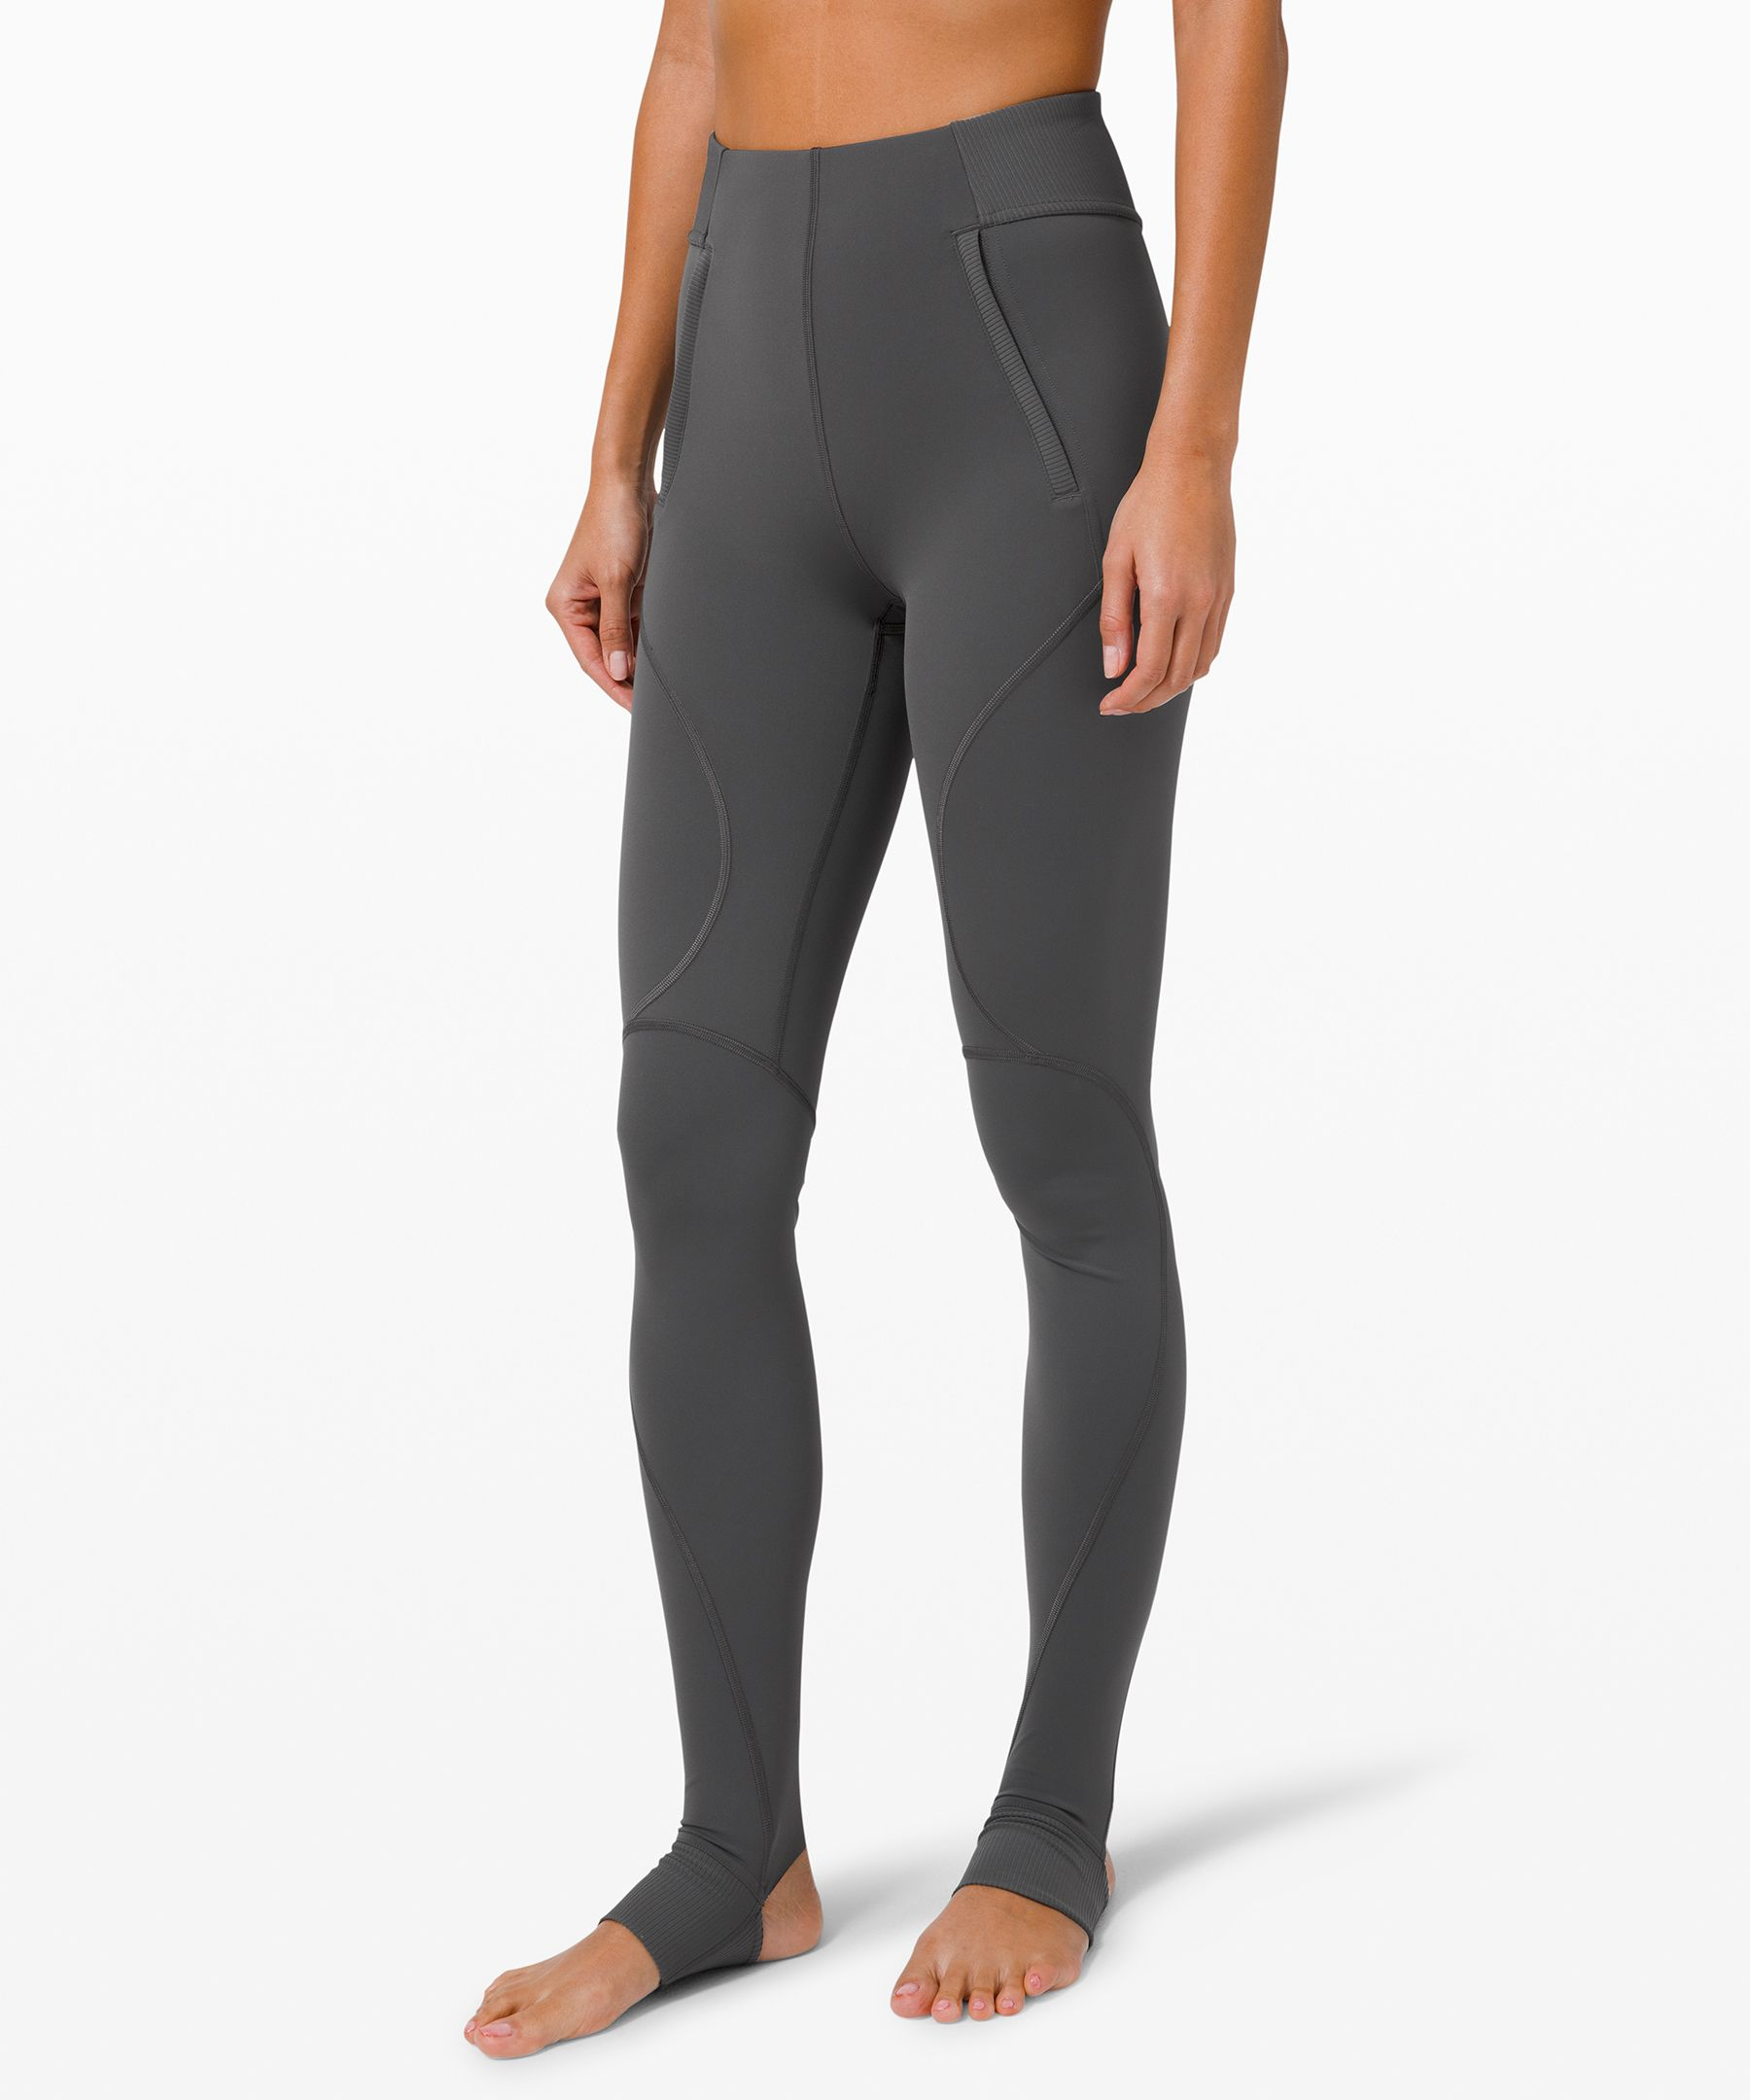 Move freely and forget your  sweat in these sleek,  technical tights. Roll up the  ribbed stirrups after your  workout for a cuffed look as  you transition from studio to  street.